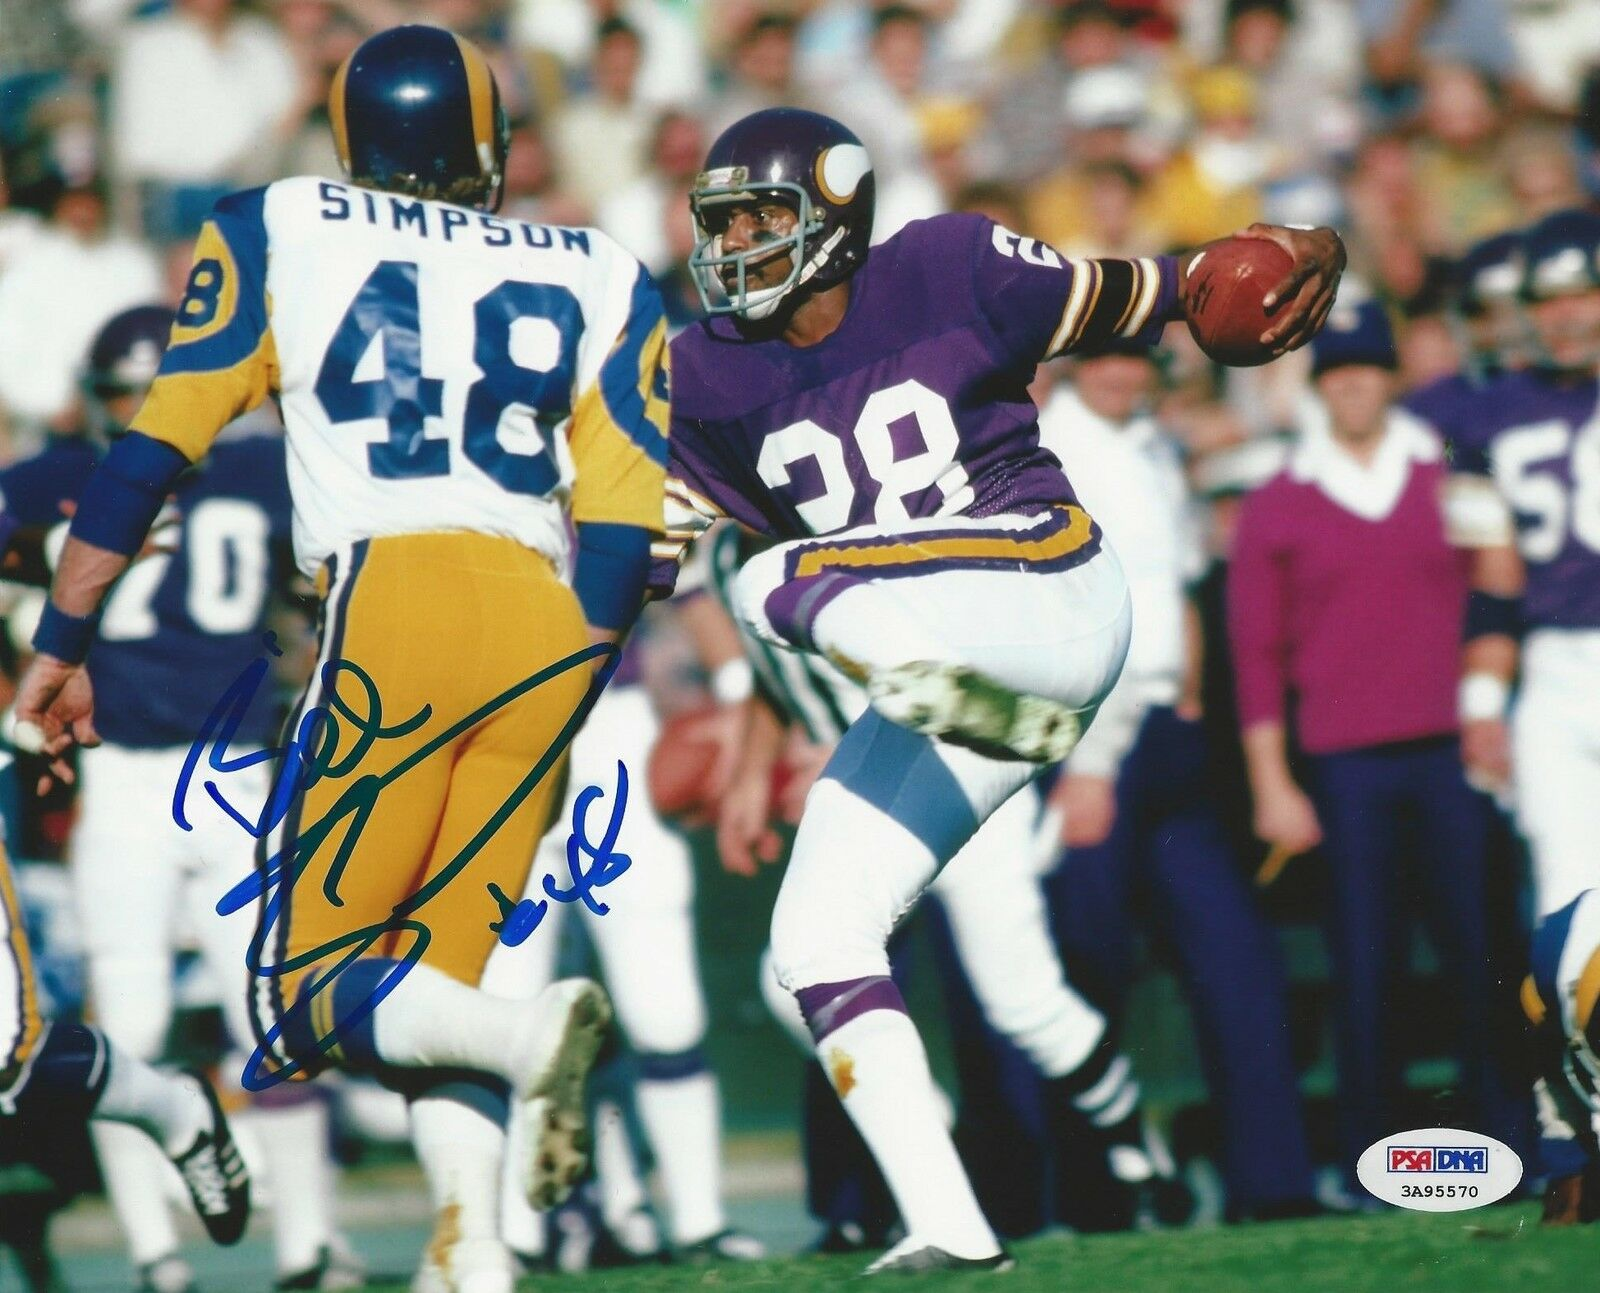 Los Angeles Rams Bill Simpson signed 8x10 Photo PSA/DNA # 3A95570